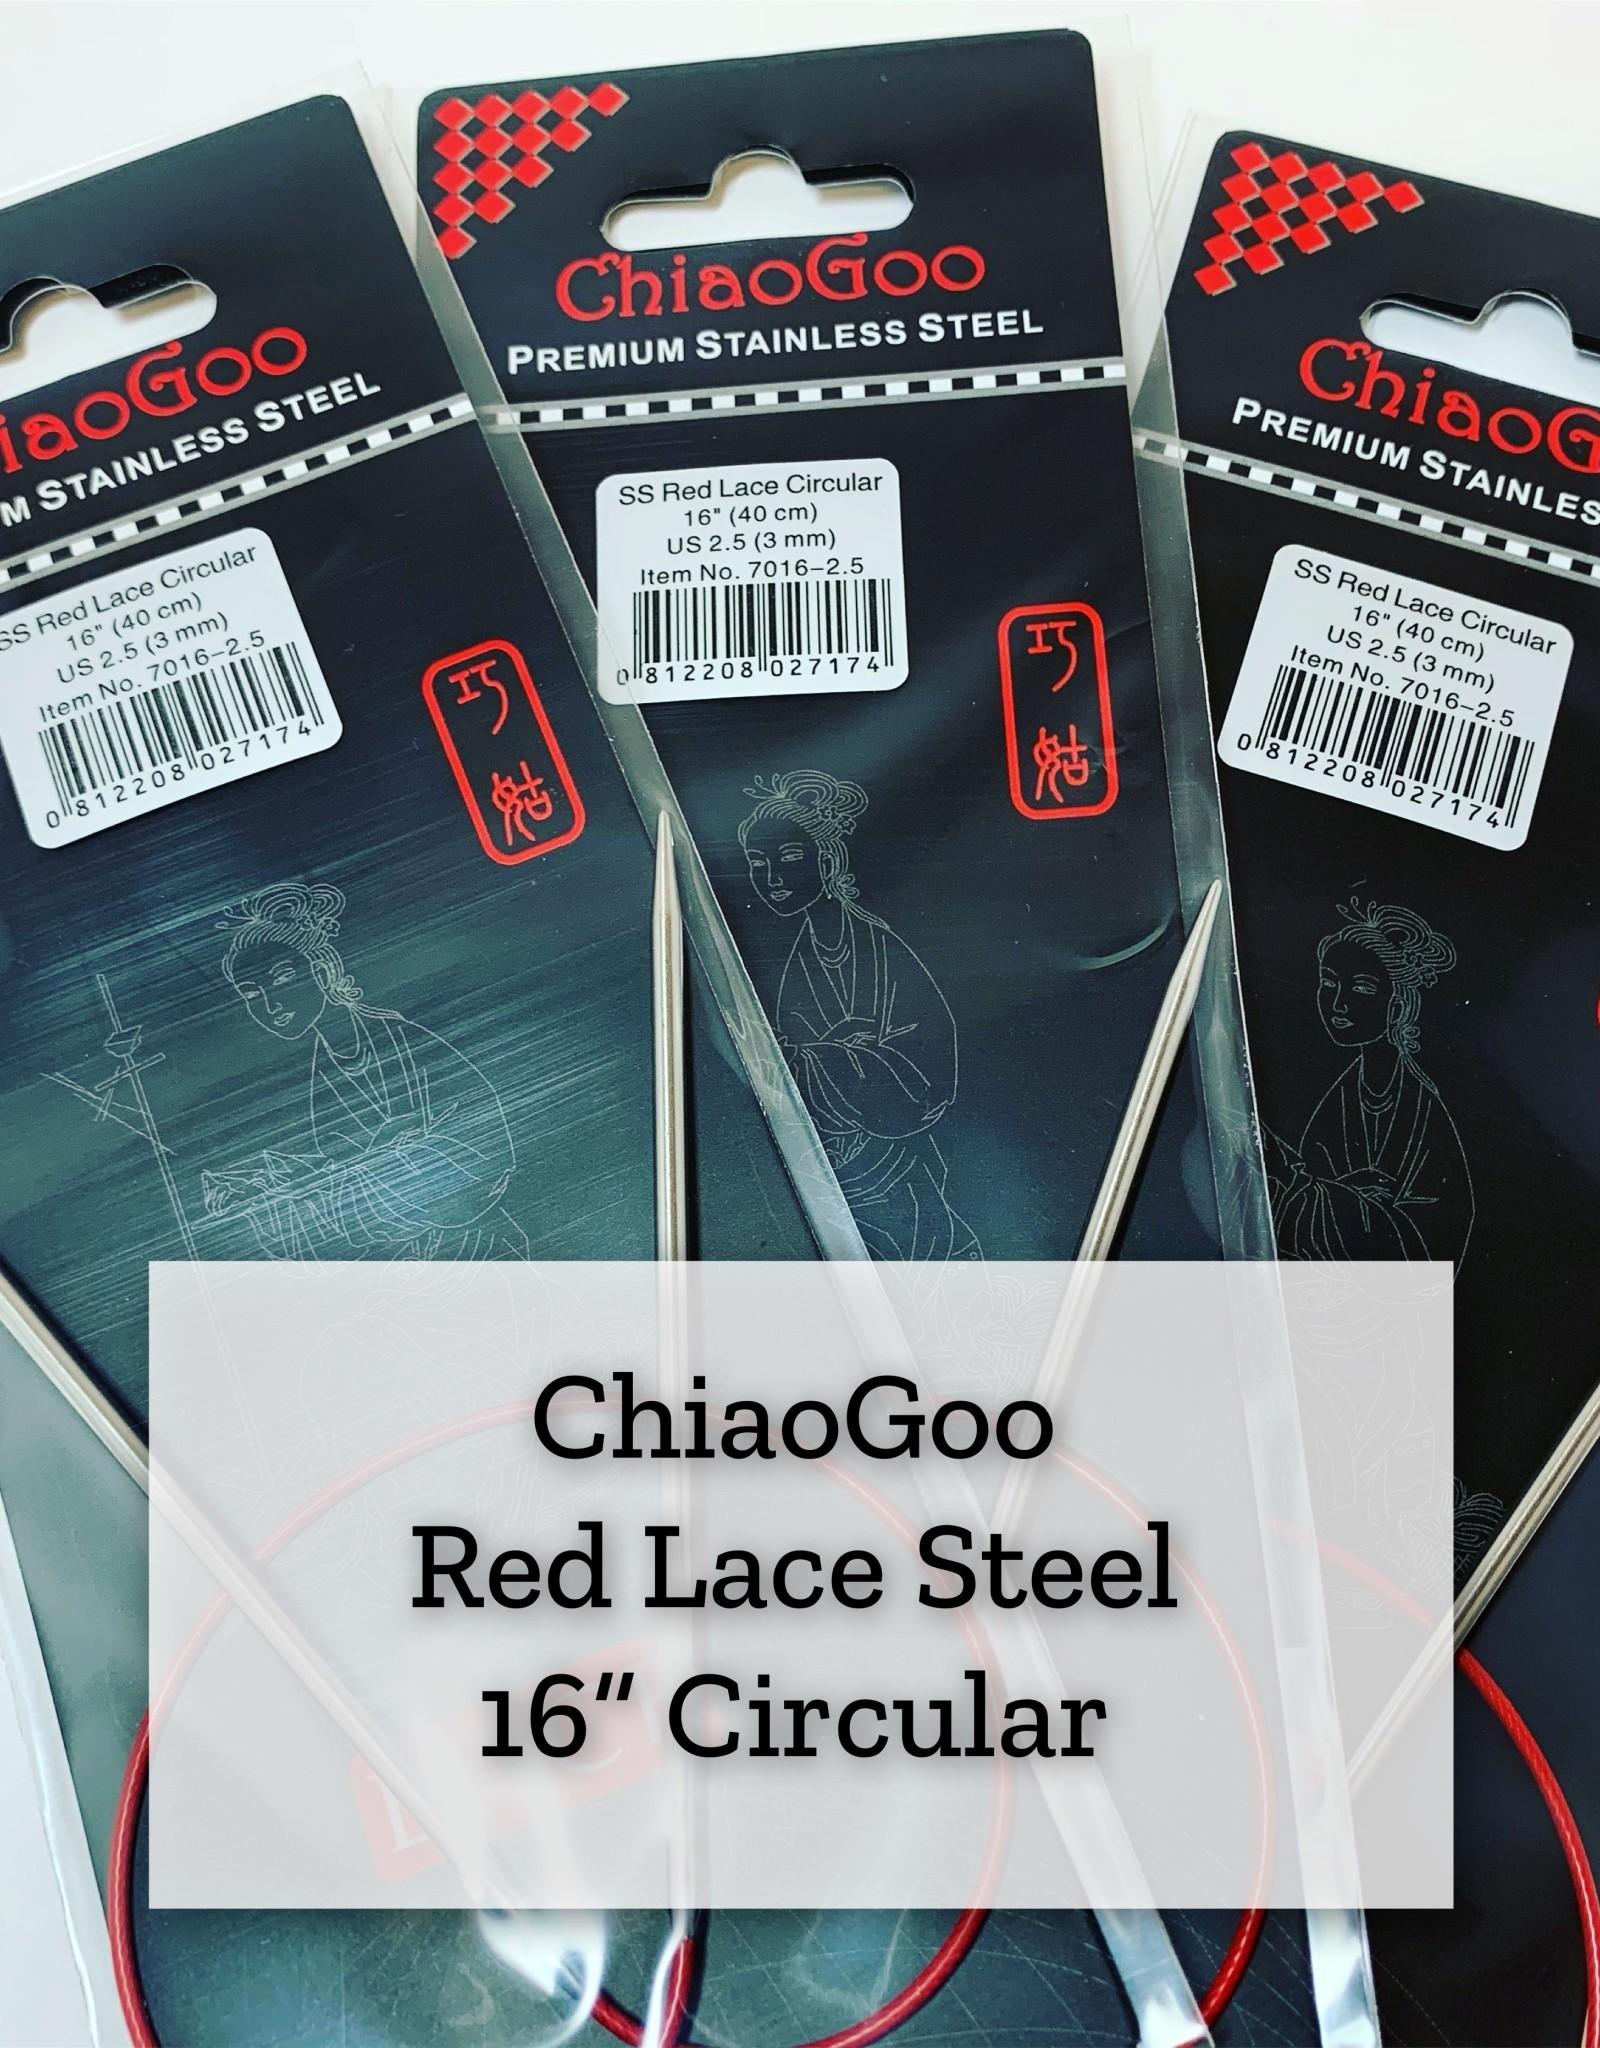 "ChiaoGoo Red Lace Steel - 16"" 5.5 mm"